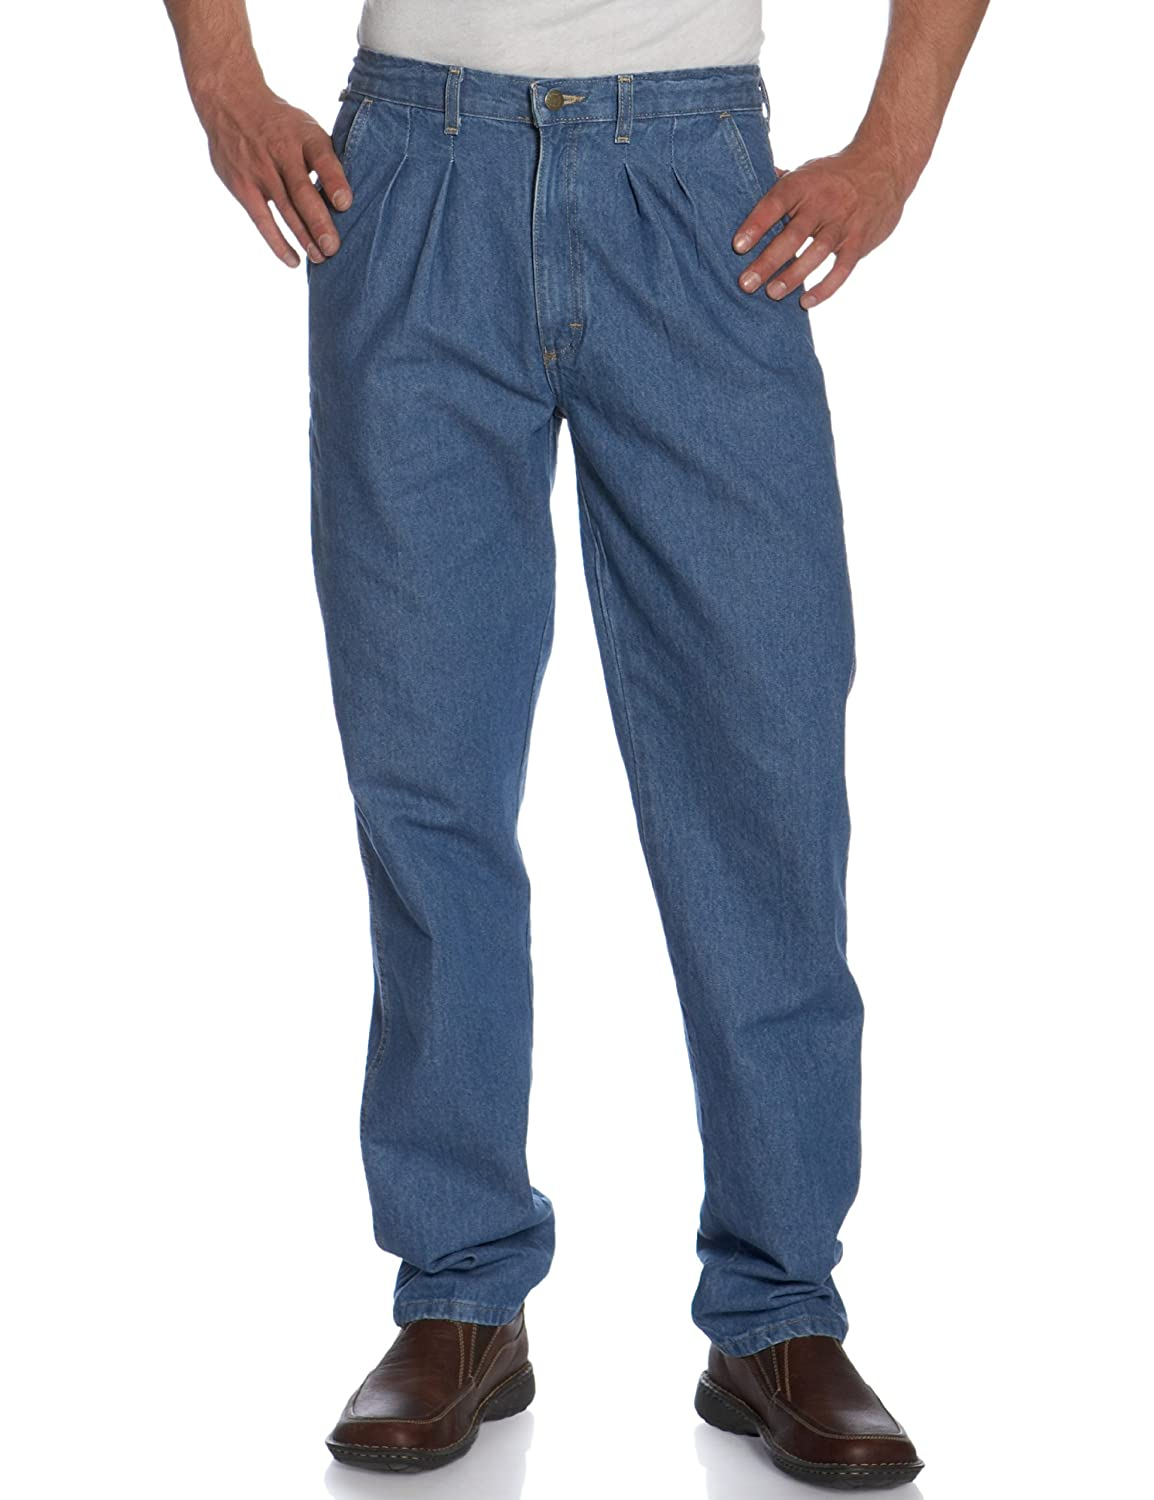 Wrangler Men's Big and Tall Rugged Wear Angler Relaxed-fit Jean 33312EI